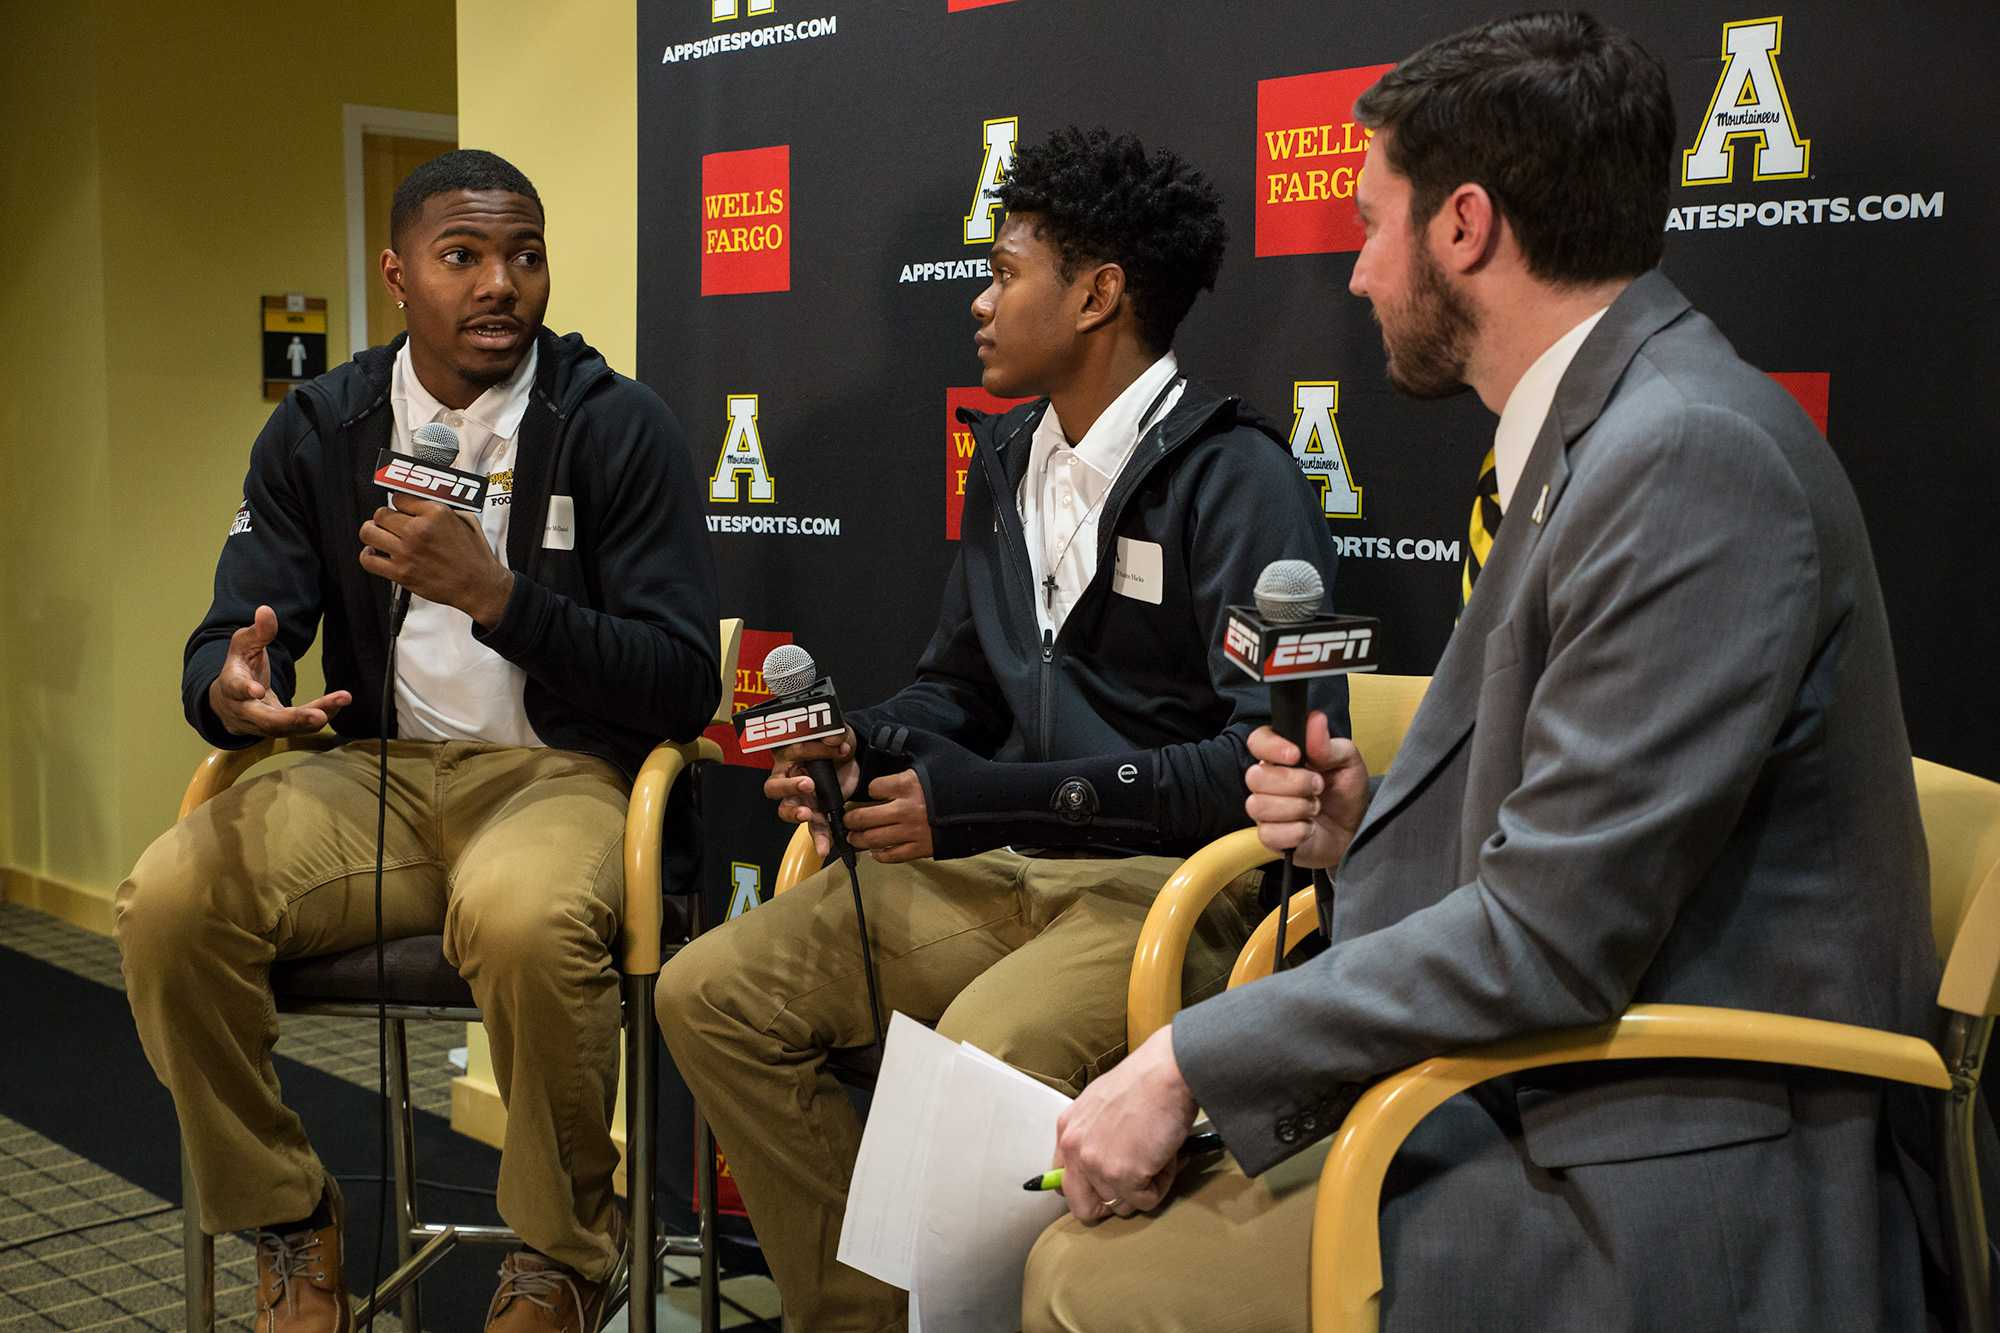 Football+recruit+Jermaine+McDaniel+discusses+with+App+State+play-by-play+announcer+Adam+Witten+why+he+commited+to+Appalachian+State.+